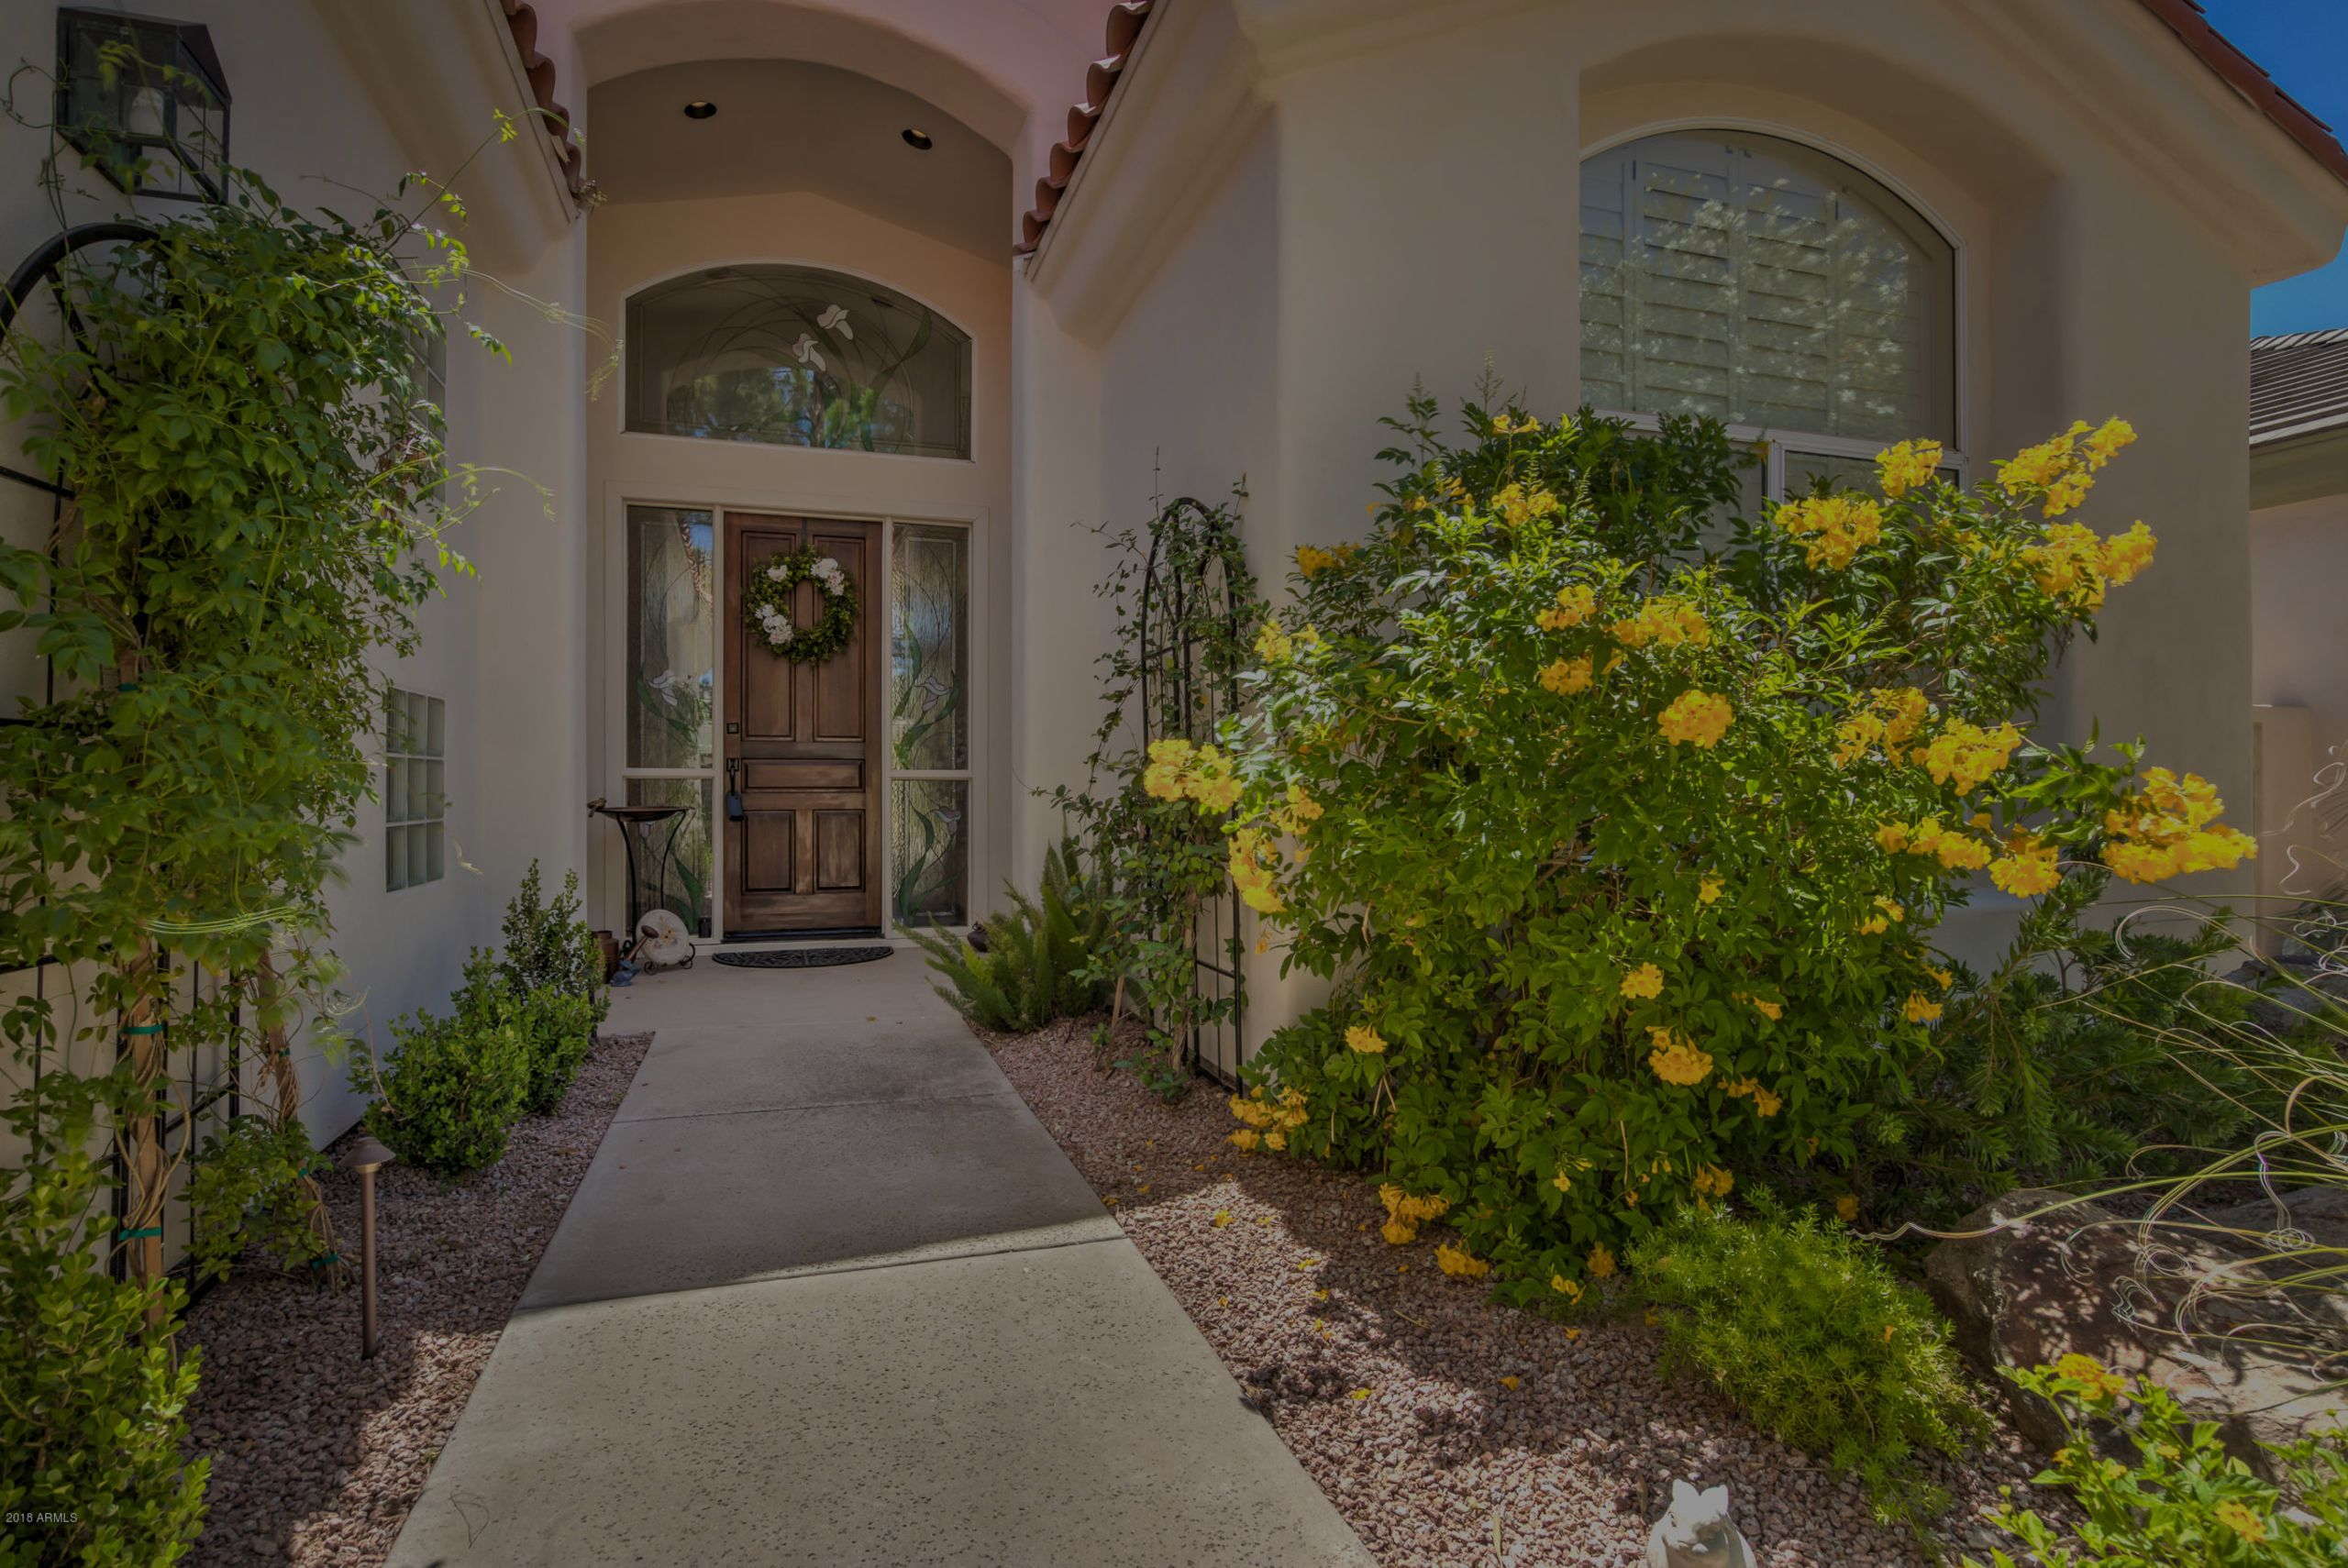 Sold! Charming Home in Stonegate Scottsdale